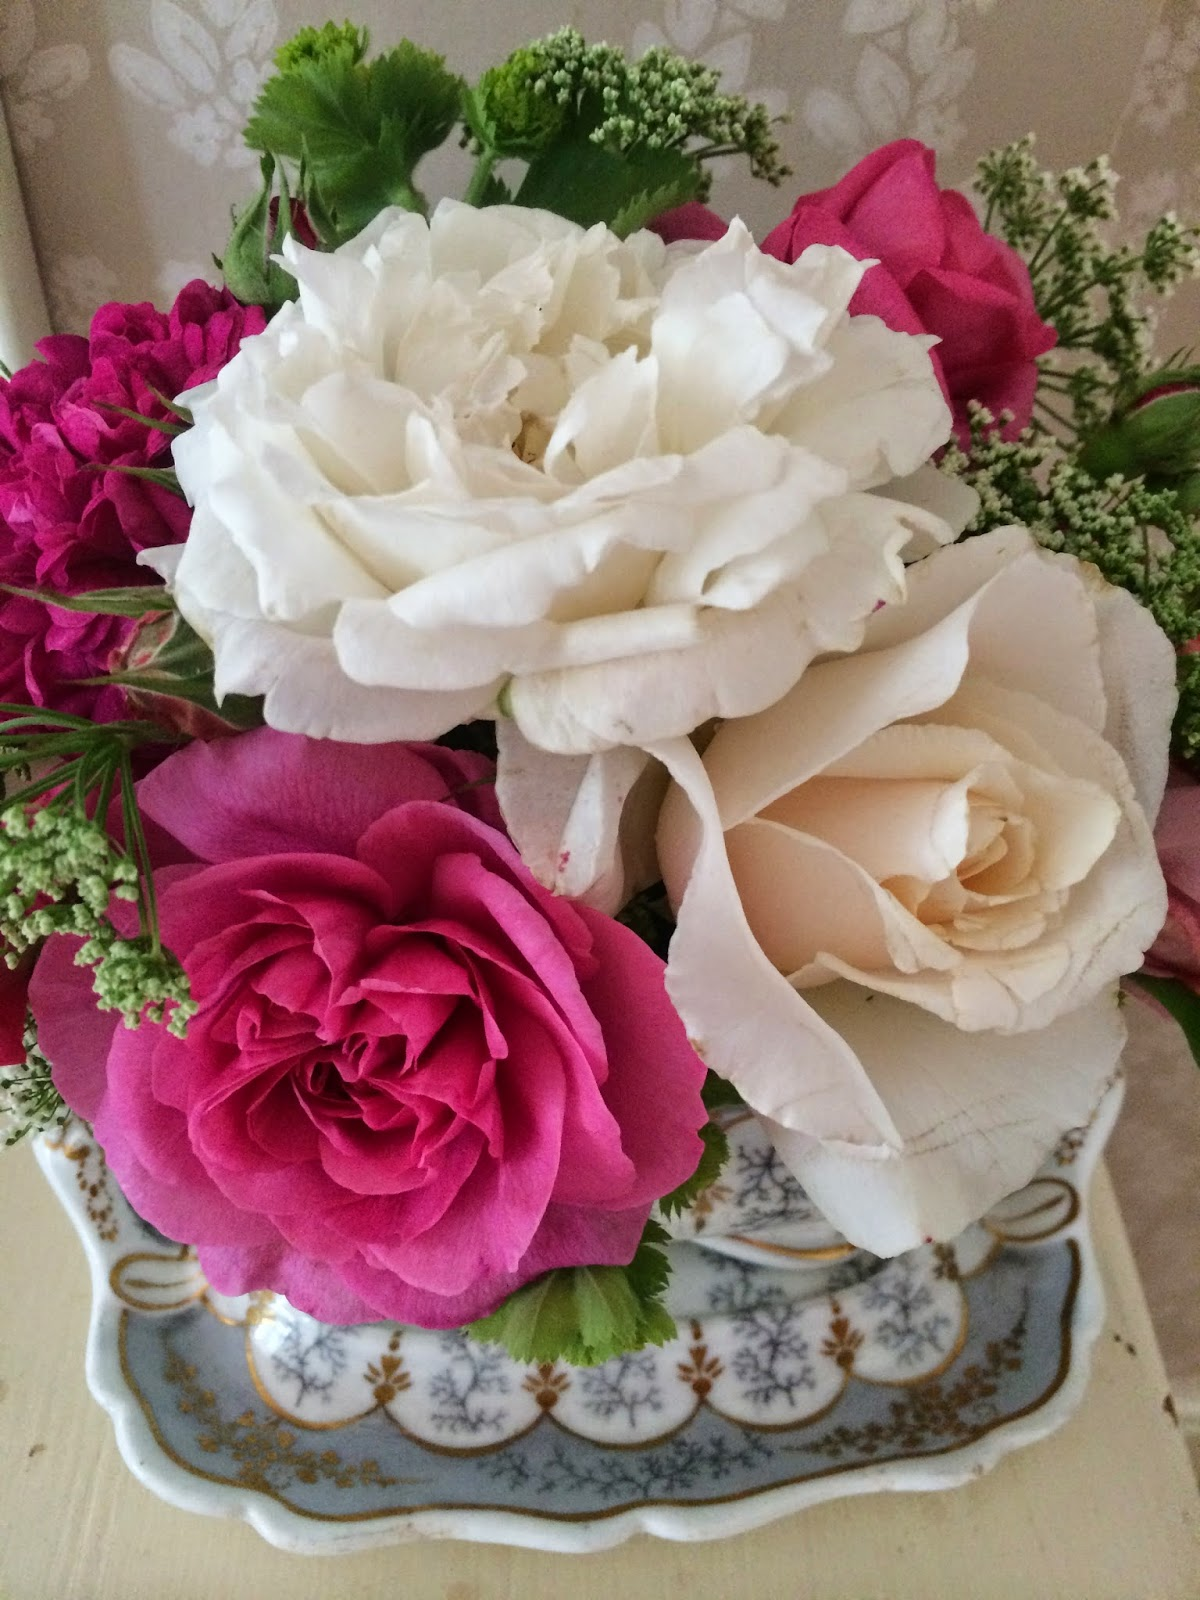 Perfumed garden roses in an ornate vintage sauce tureen.